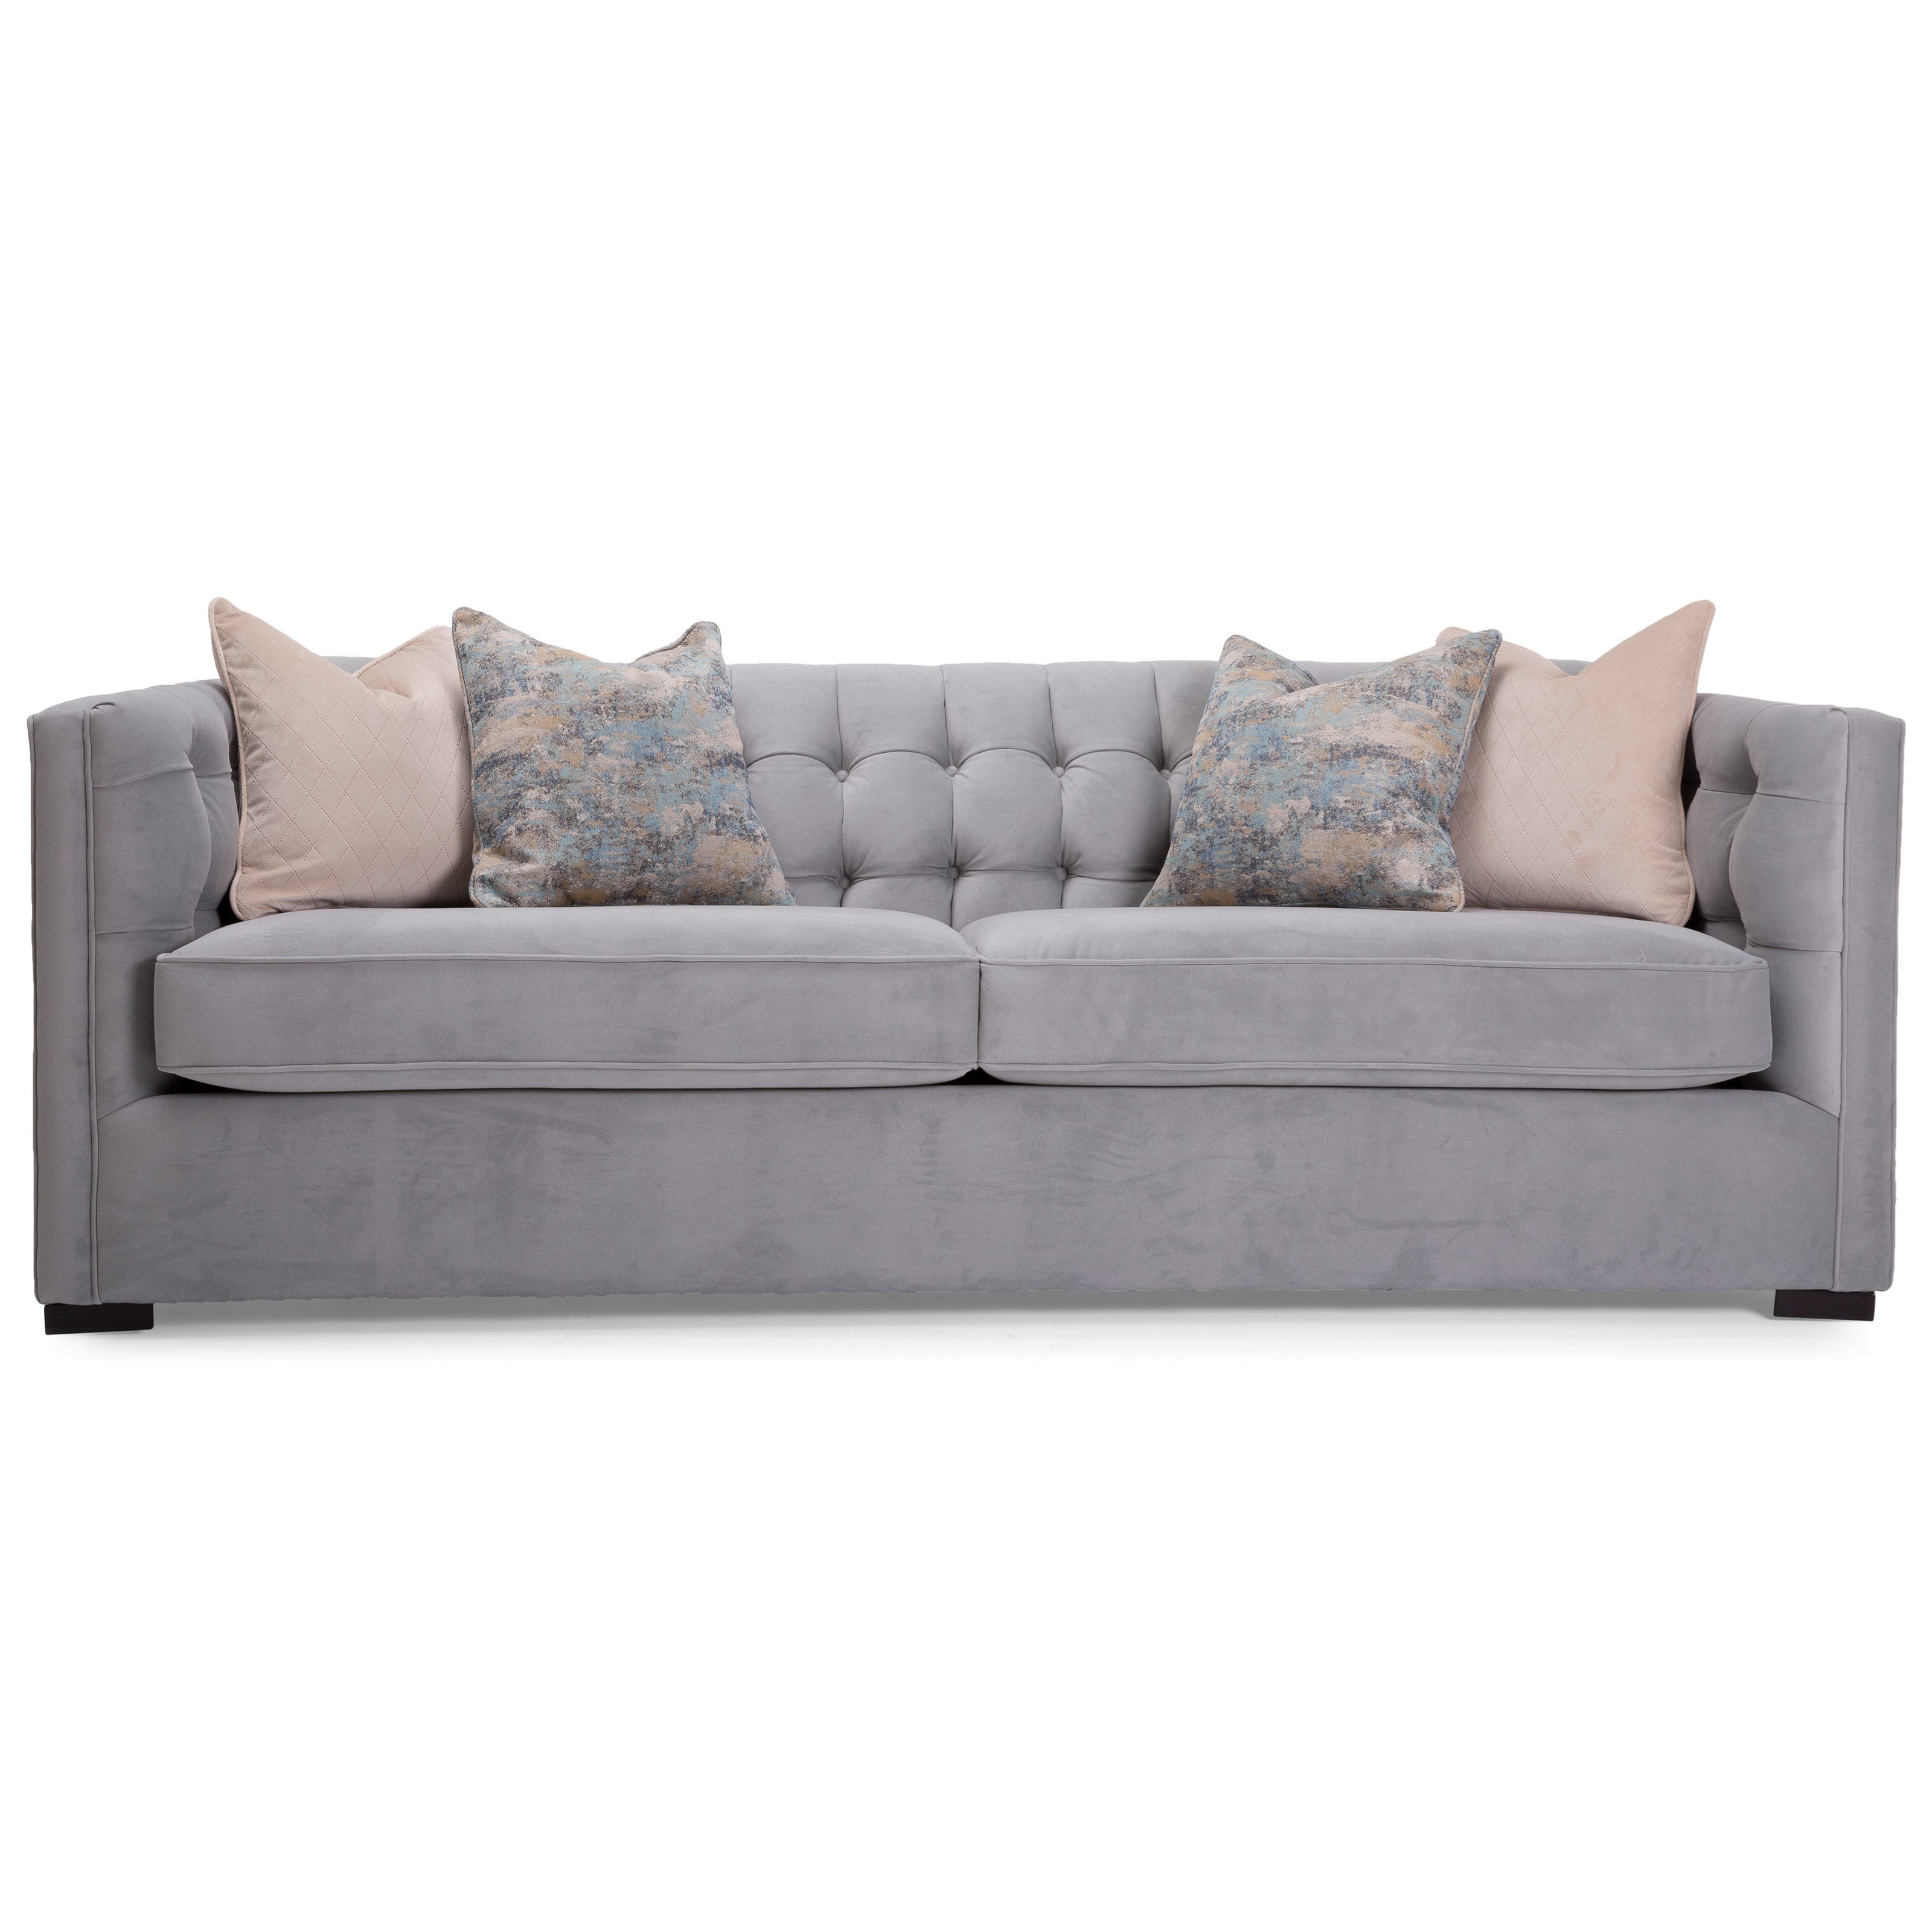 7793 Series Sofa by Decor-Rest at Johnny Janosik